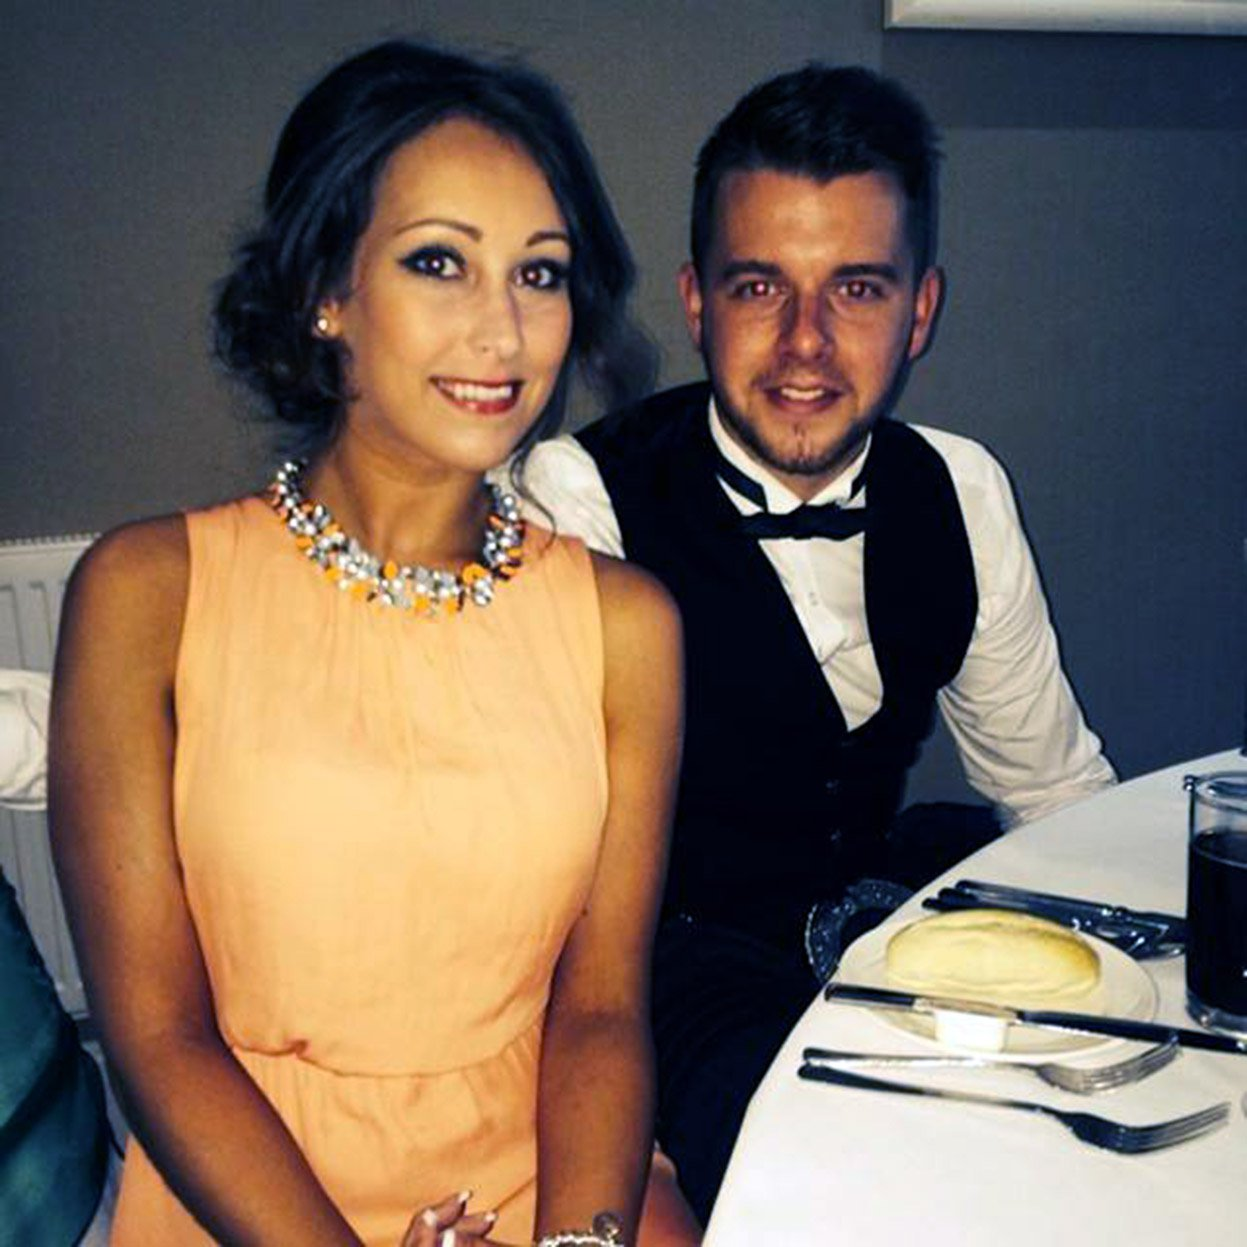 Men who saw newlywed before she fell from balcony say her death was a 'tragic accident'